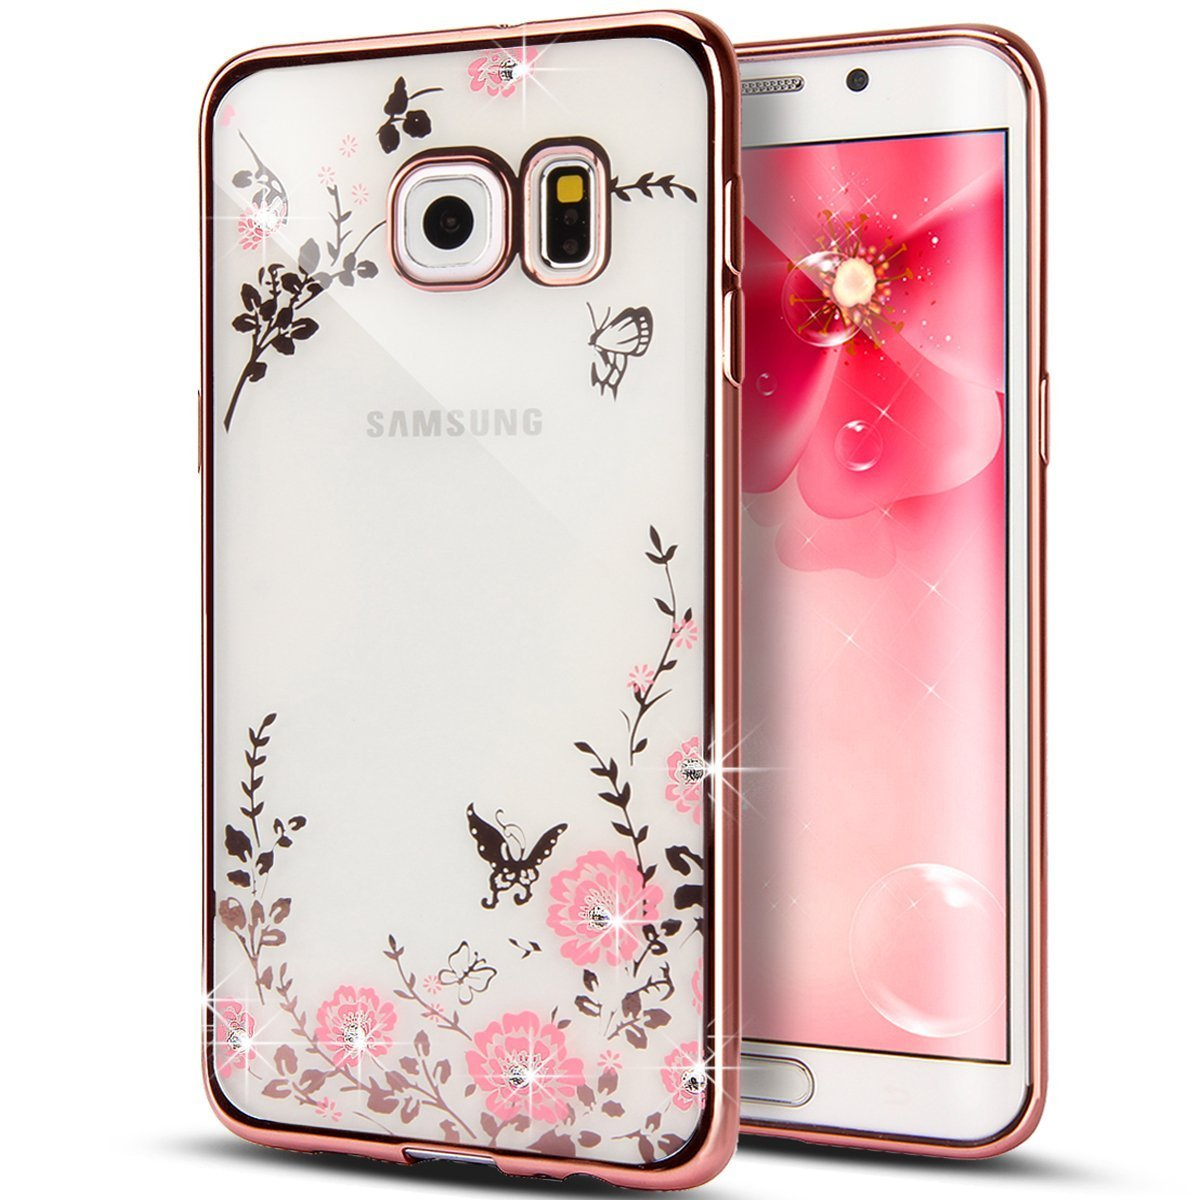 Secret Garden HAOTP Beauty Luxury Butterfly Floral Flower Diamonds Shiny Plating Frame Plating Bumper Soft Flexible TPU Transparent Skin Case for Samsung Galaxy S6 Edge Plus Swarovski Rose Gold/Pink